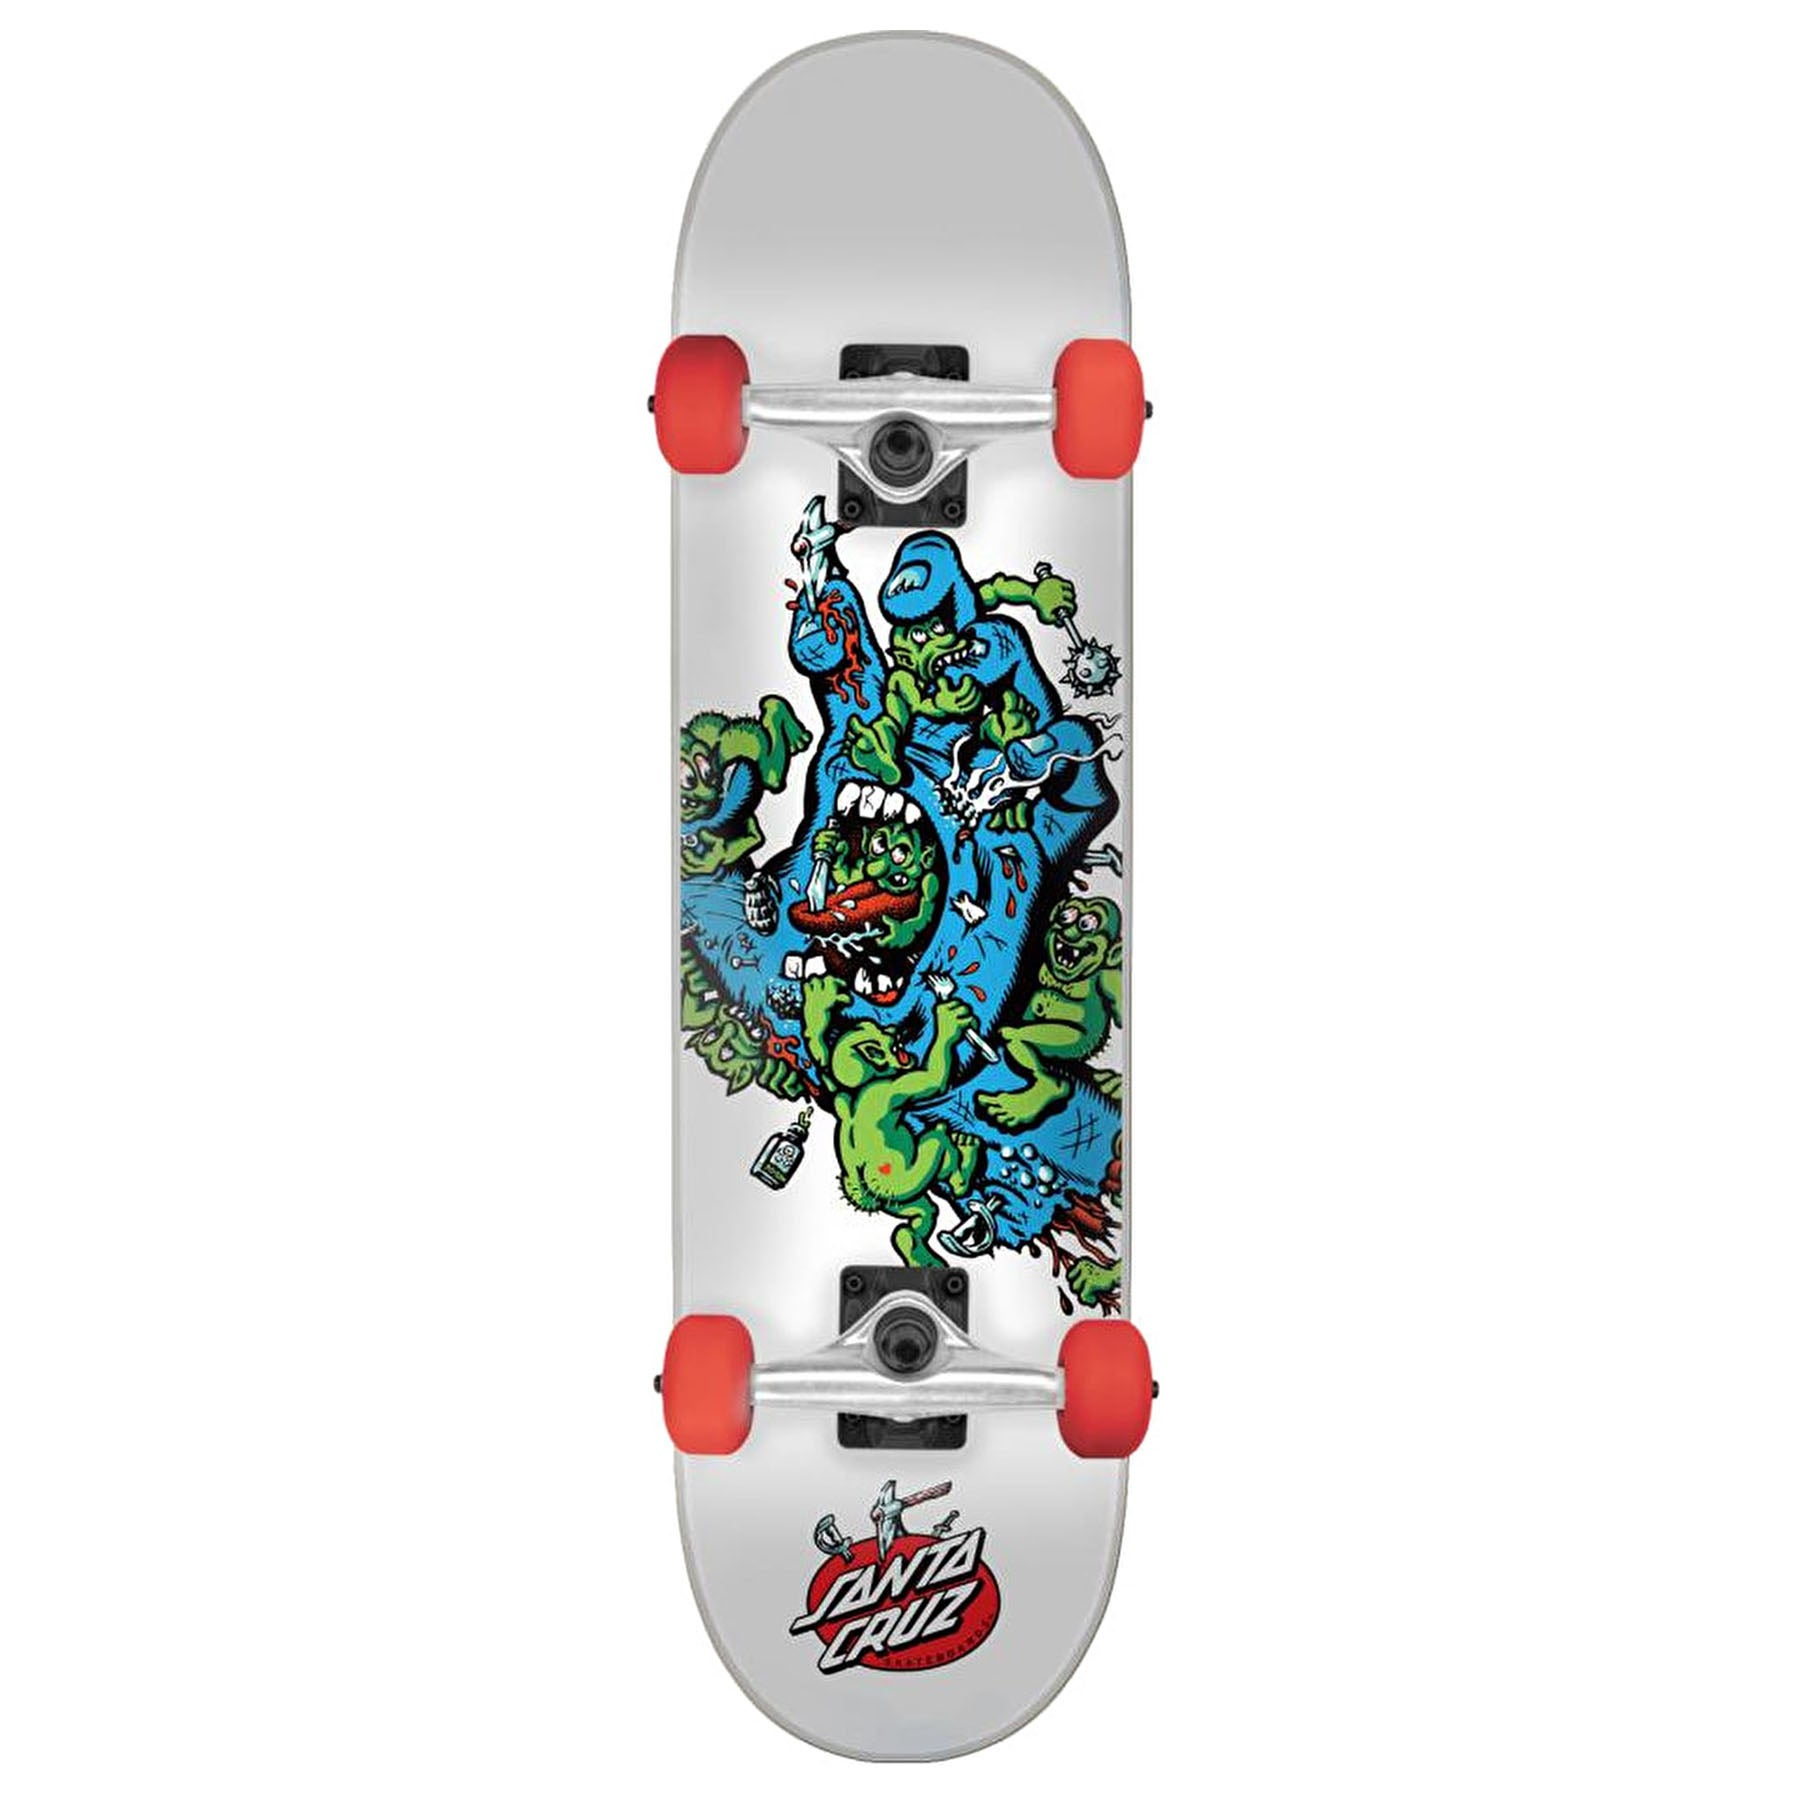 Patinete Santa Cruz Gremlin Patrol 7.25in - White Blue